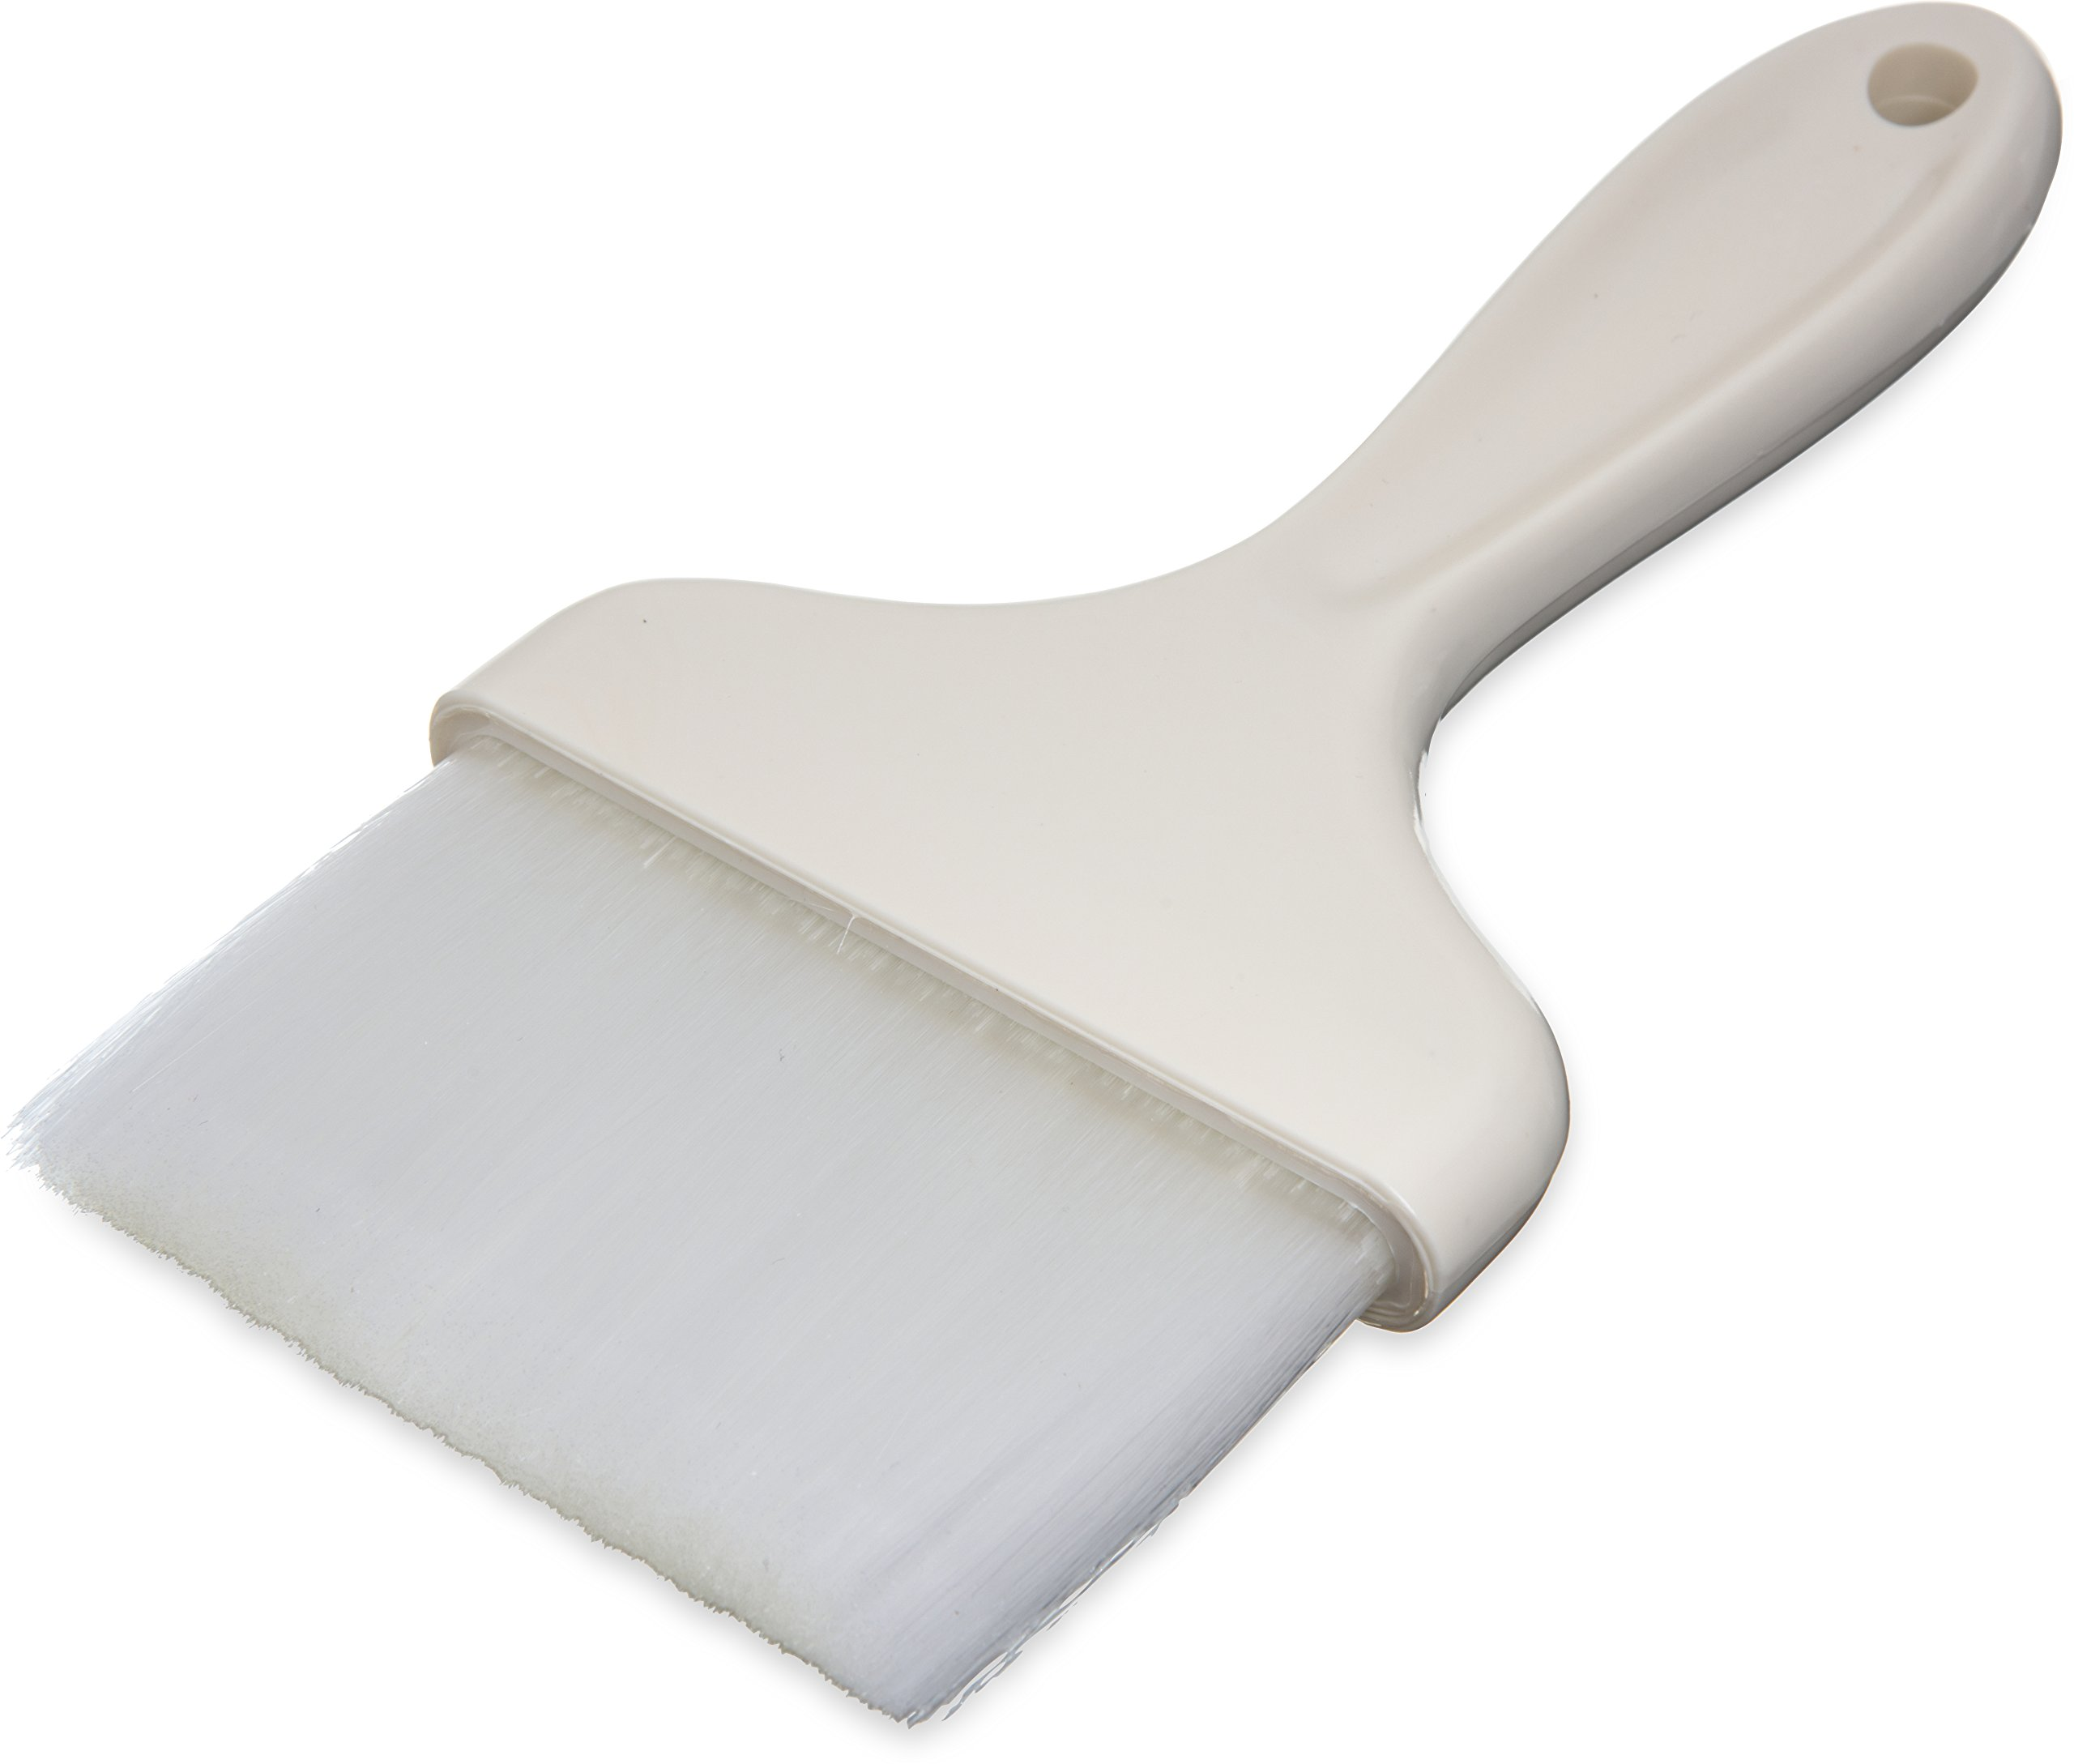 Carlisle 4039302 White 4'' Galaxy Pastry Brush with Plastic Handle (Case of 12) by Carlisle